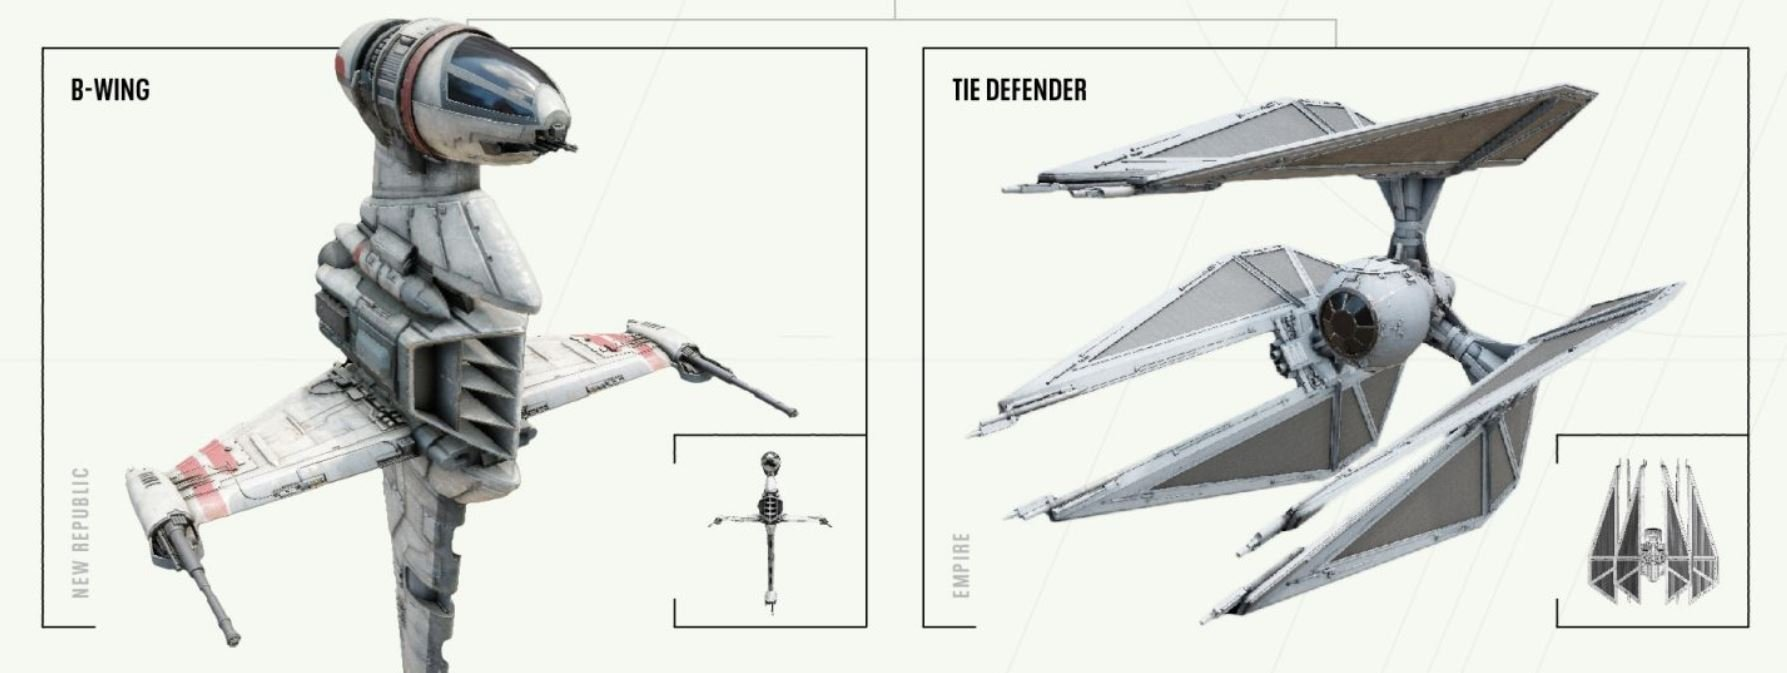 B-wing and TIE Defender